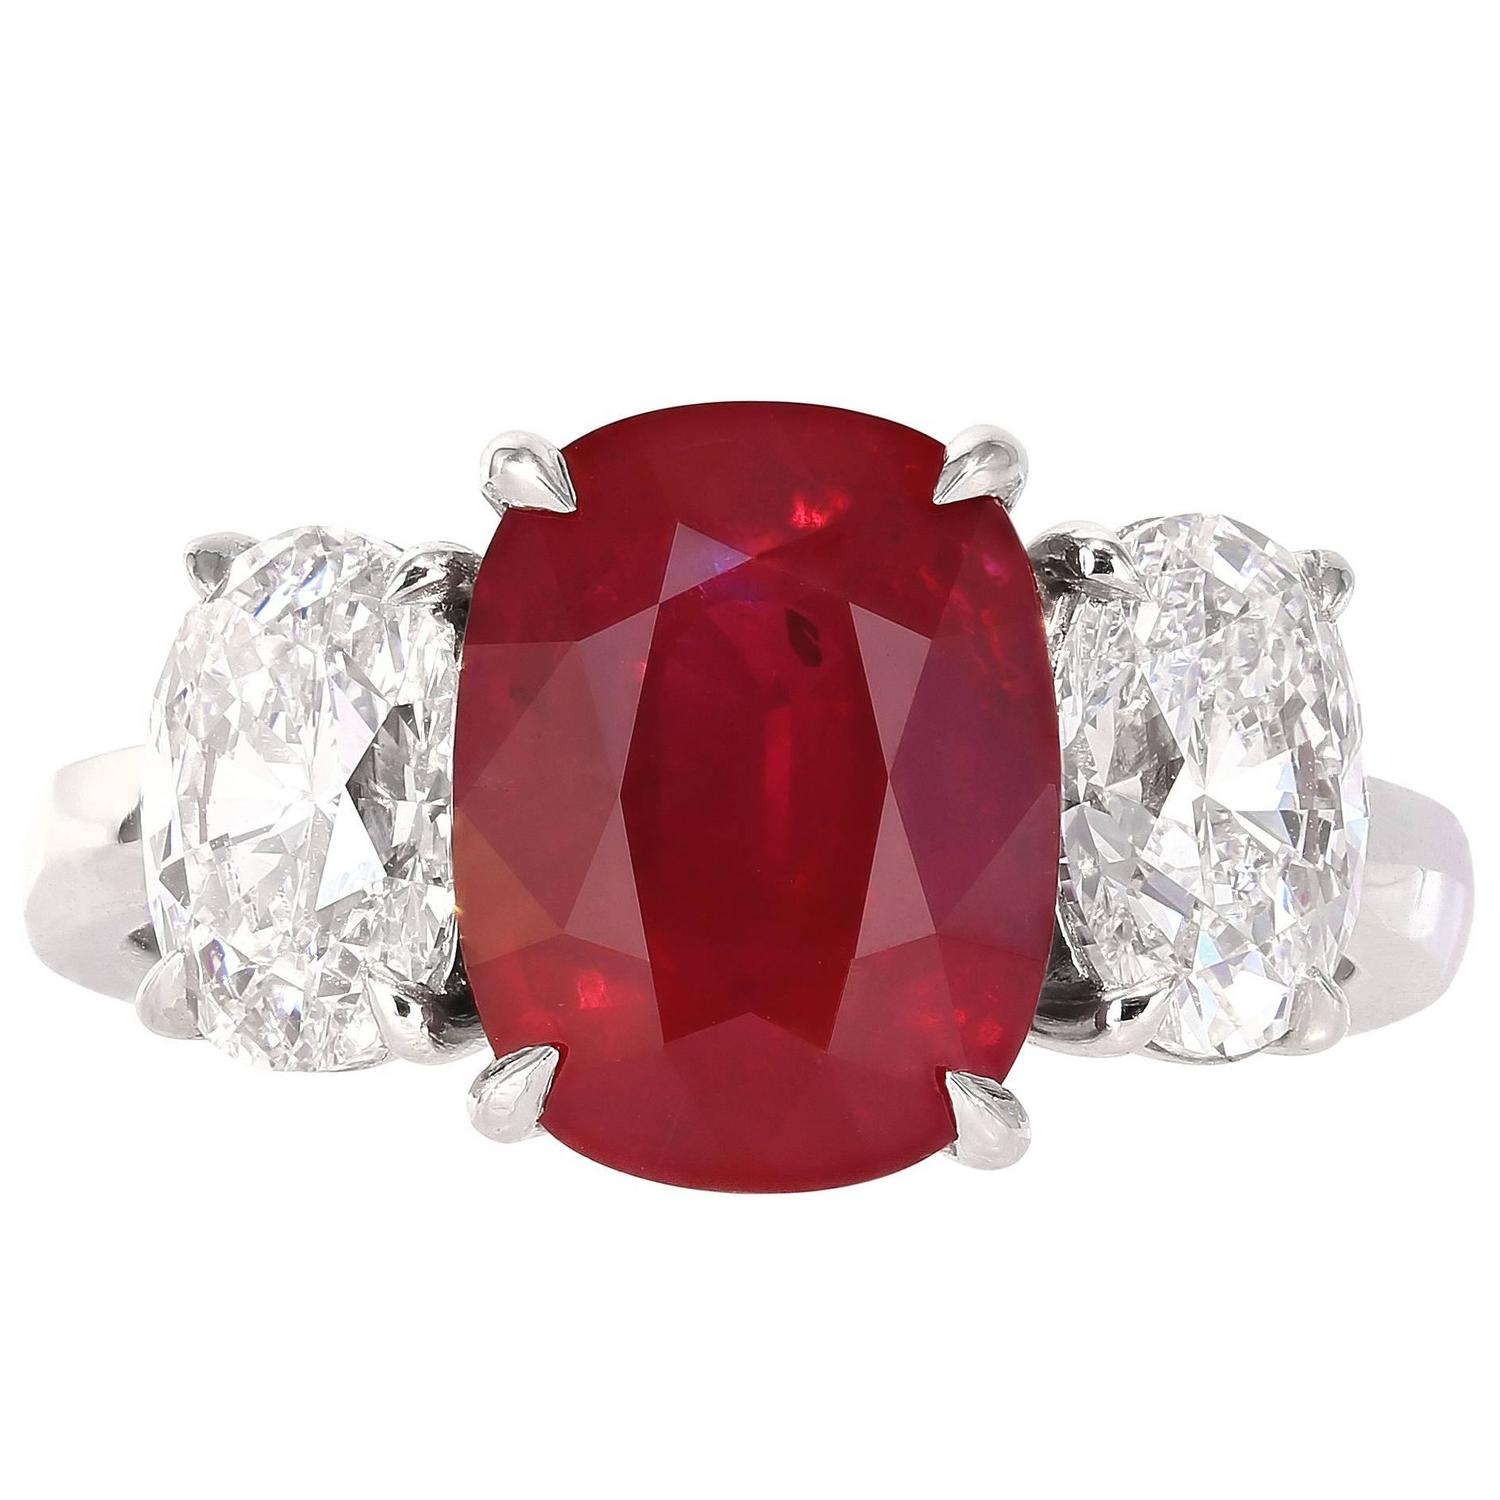 ruby trends rings flower jewellery size cz n products rose silver jewelry fine fandango red lzeshine adjustable ring sterling with fascinating